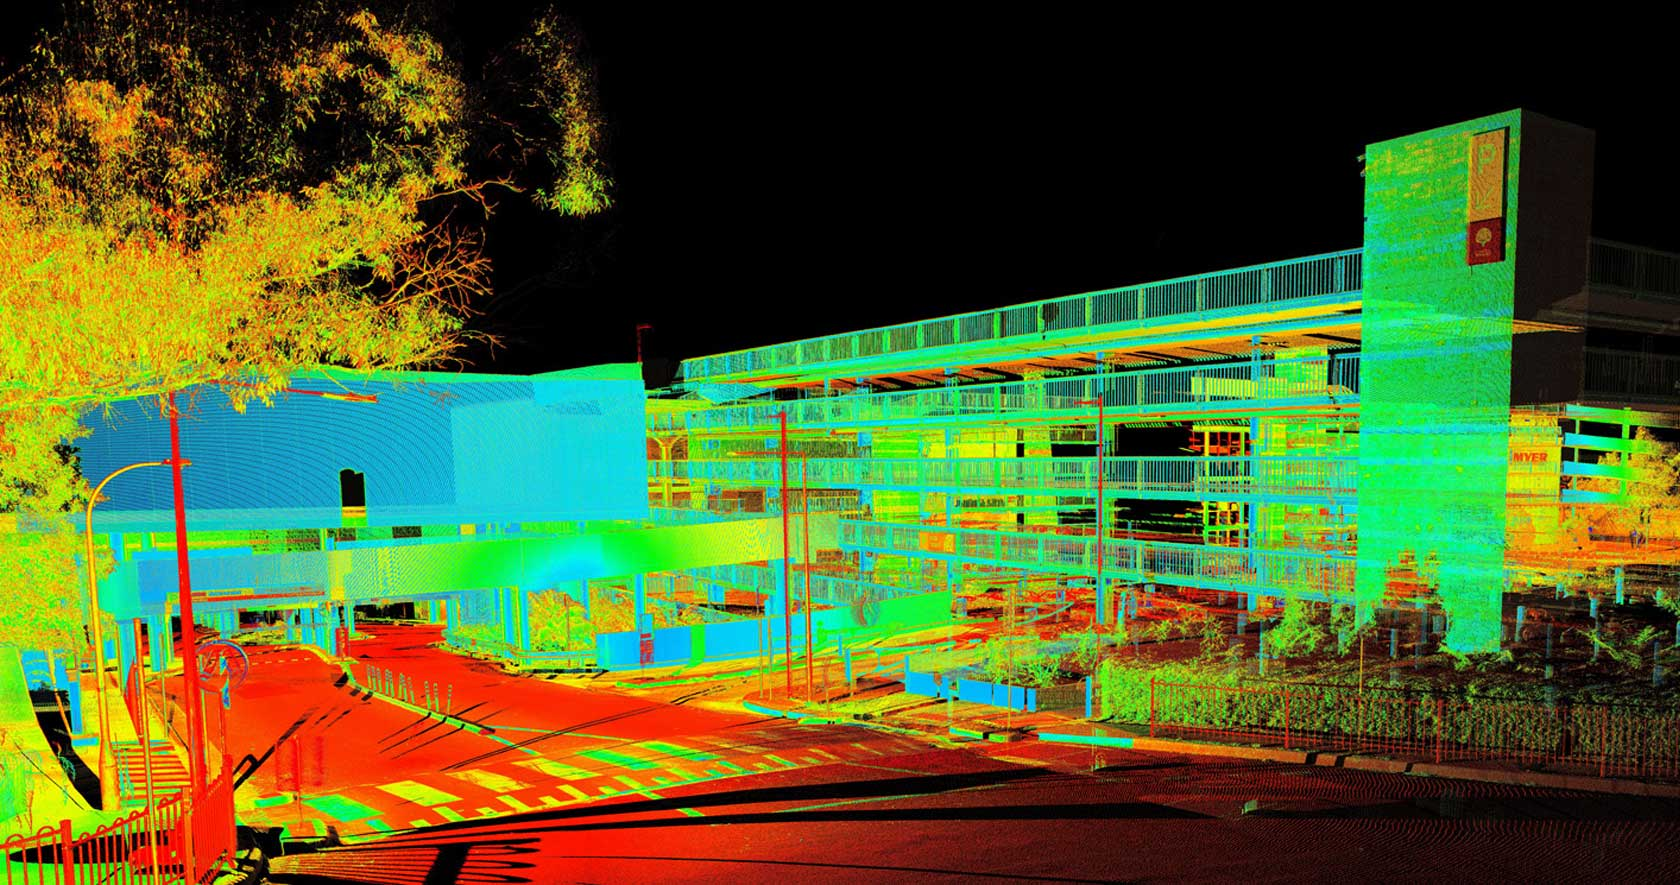 Implementing Reality Capture into BIM with 3D laser scanning